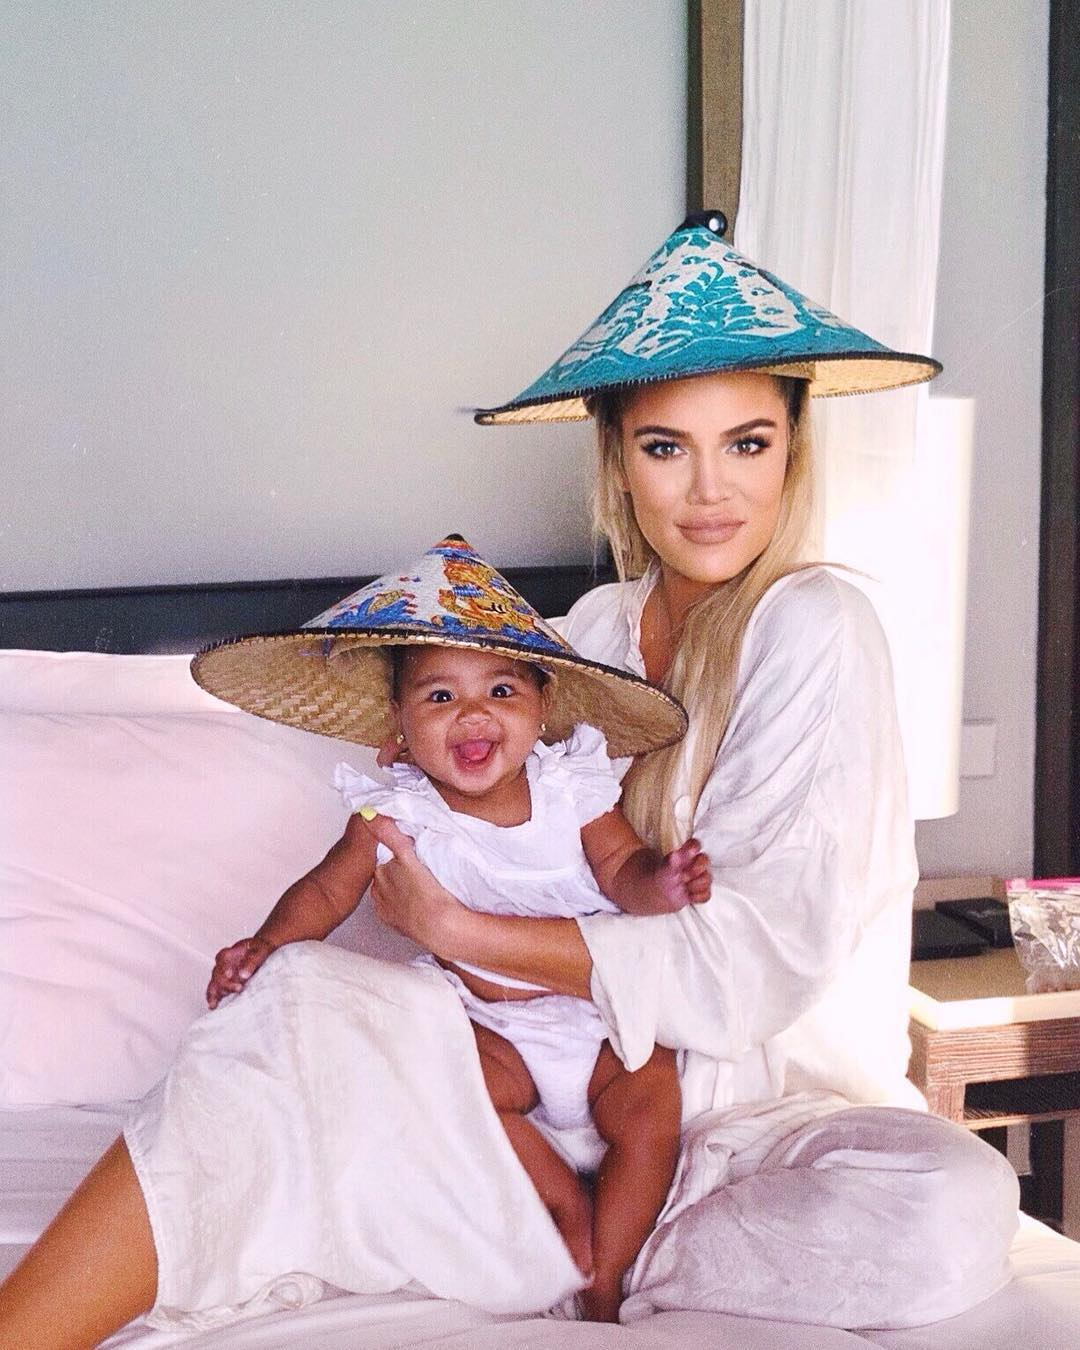 Khloé Kardashian With Her Daughter In Asian Conical Hats 2020